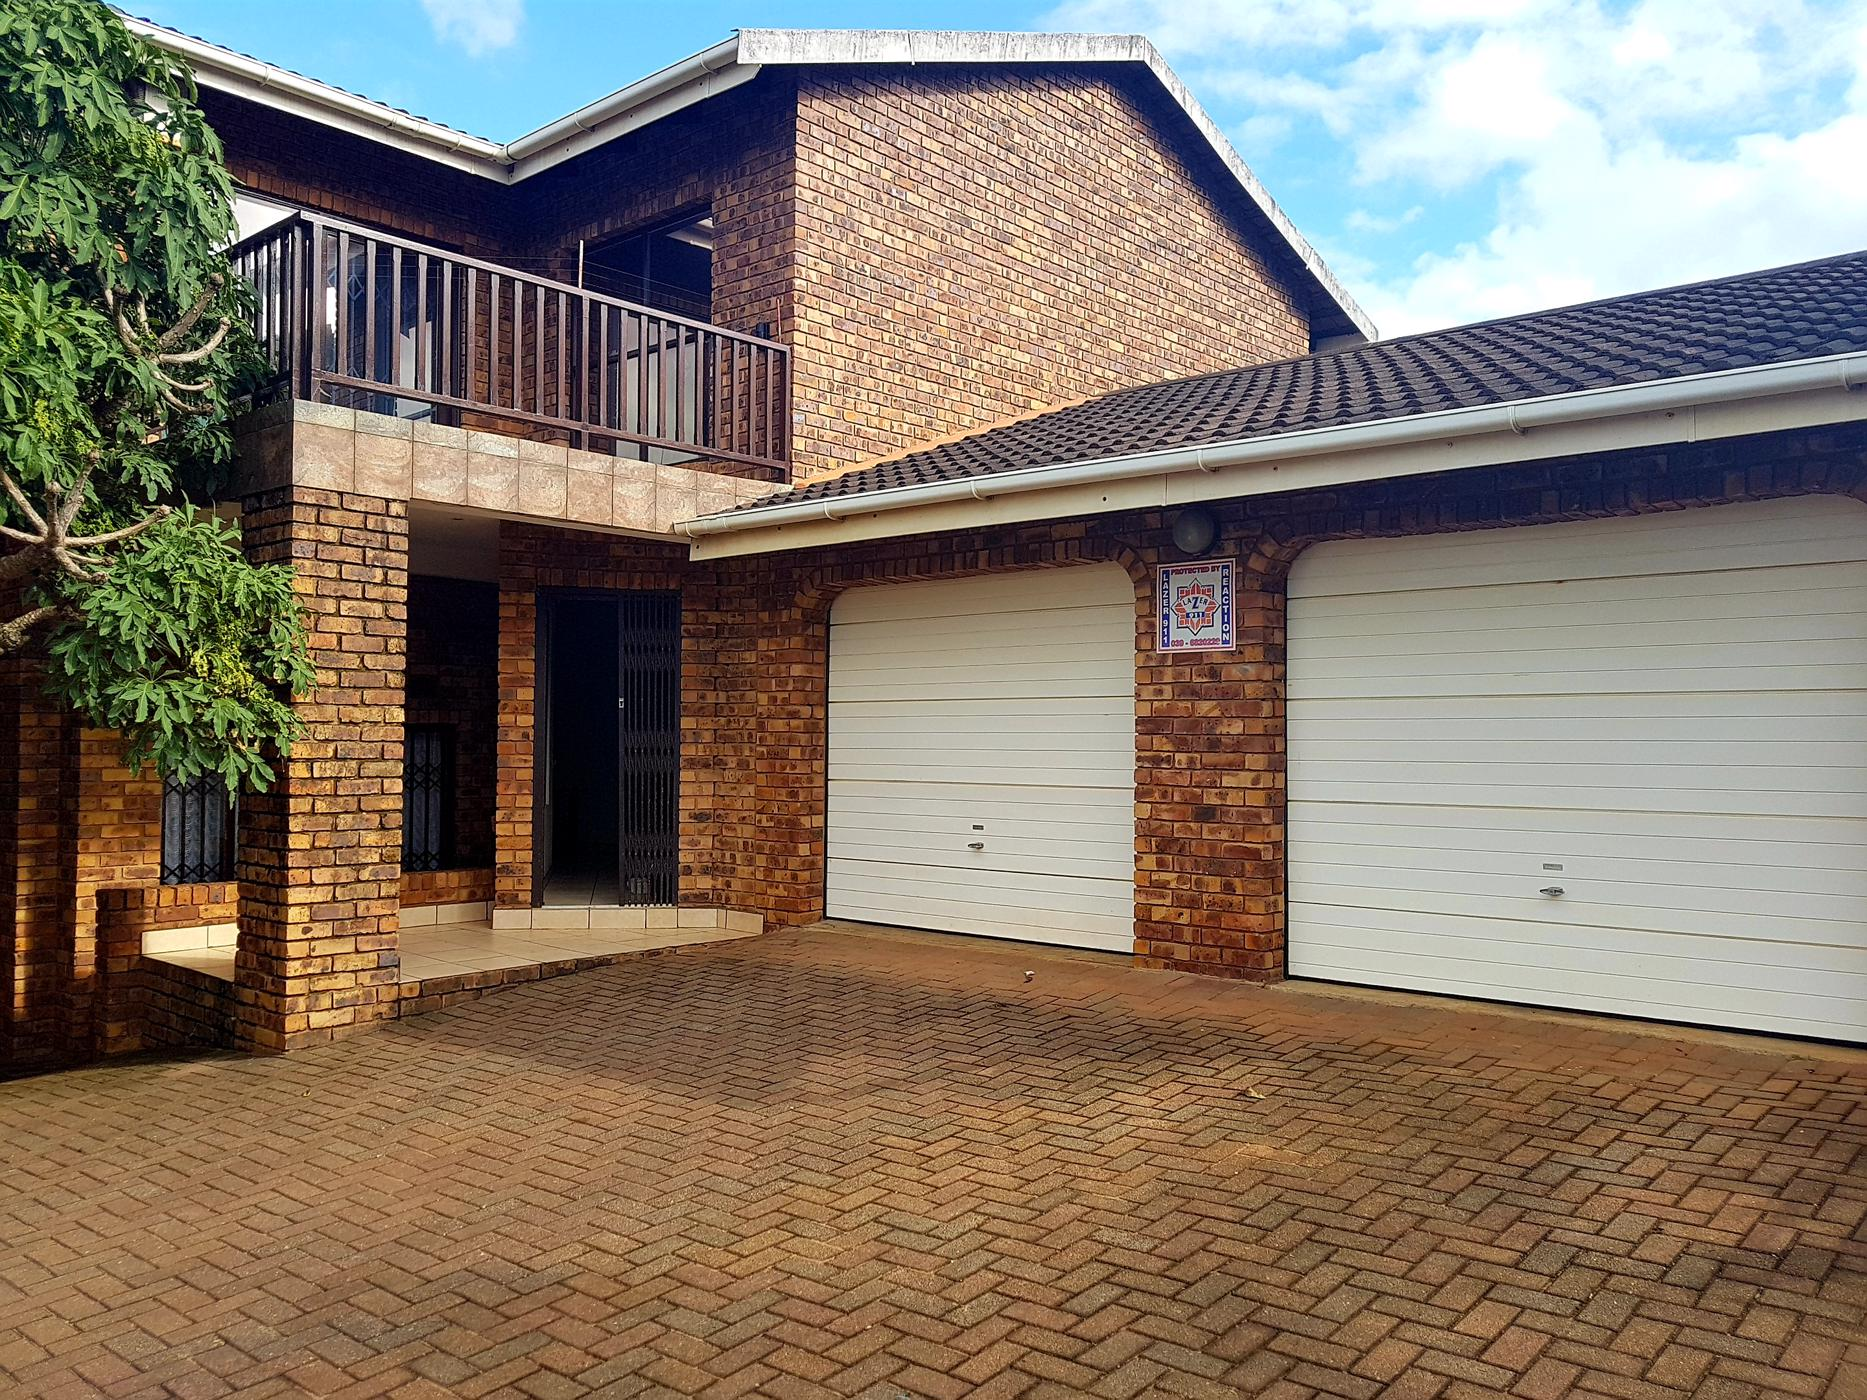 5 Bedroom House For Sale In Southport R2400000